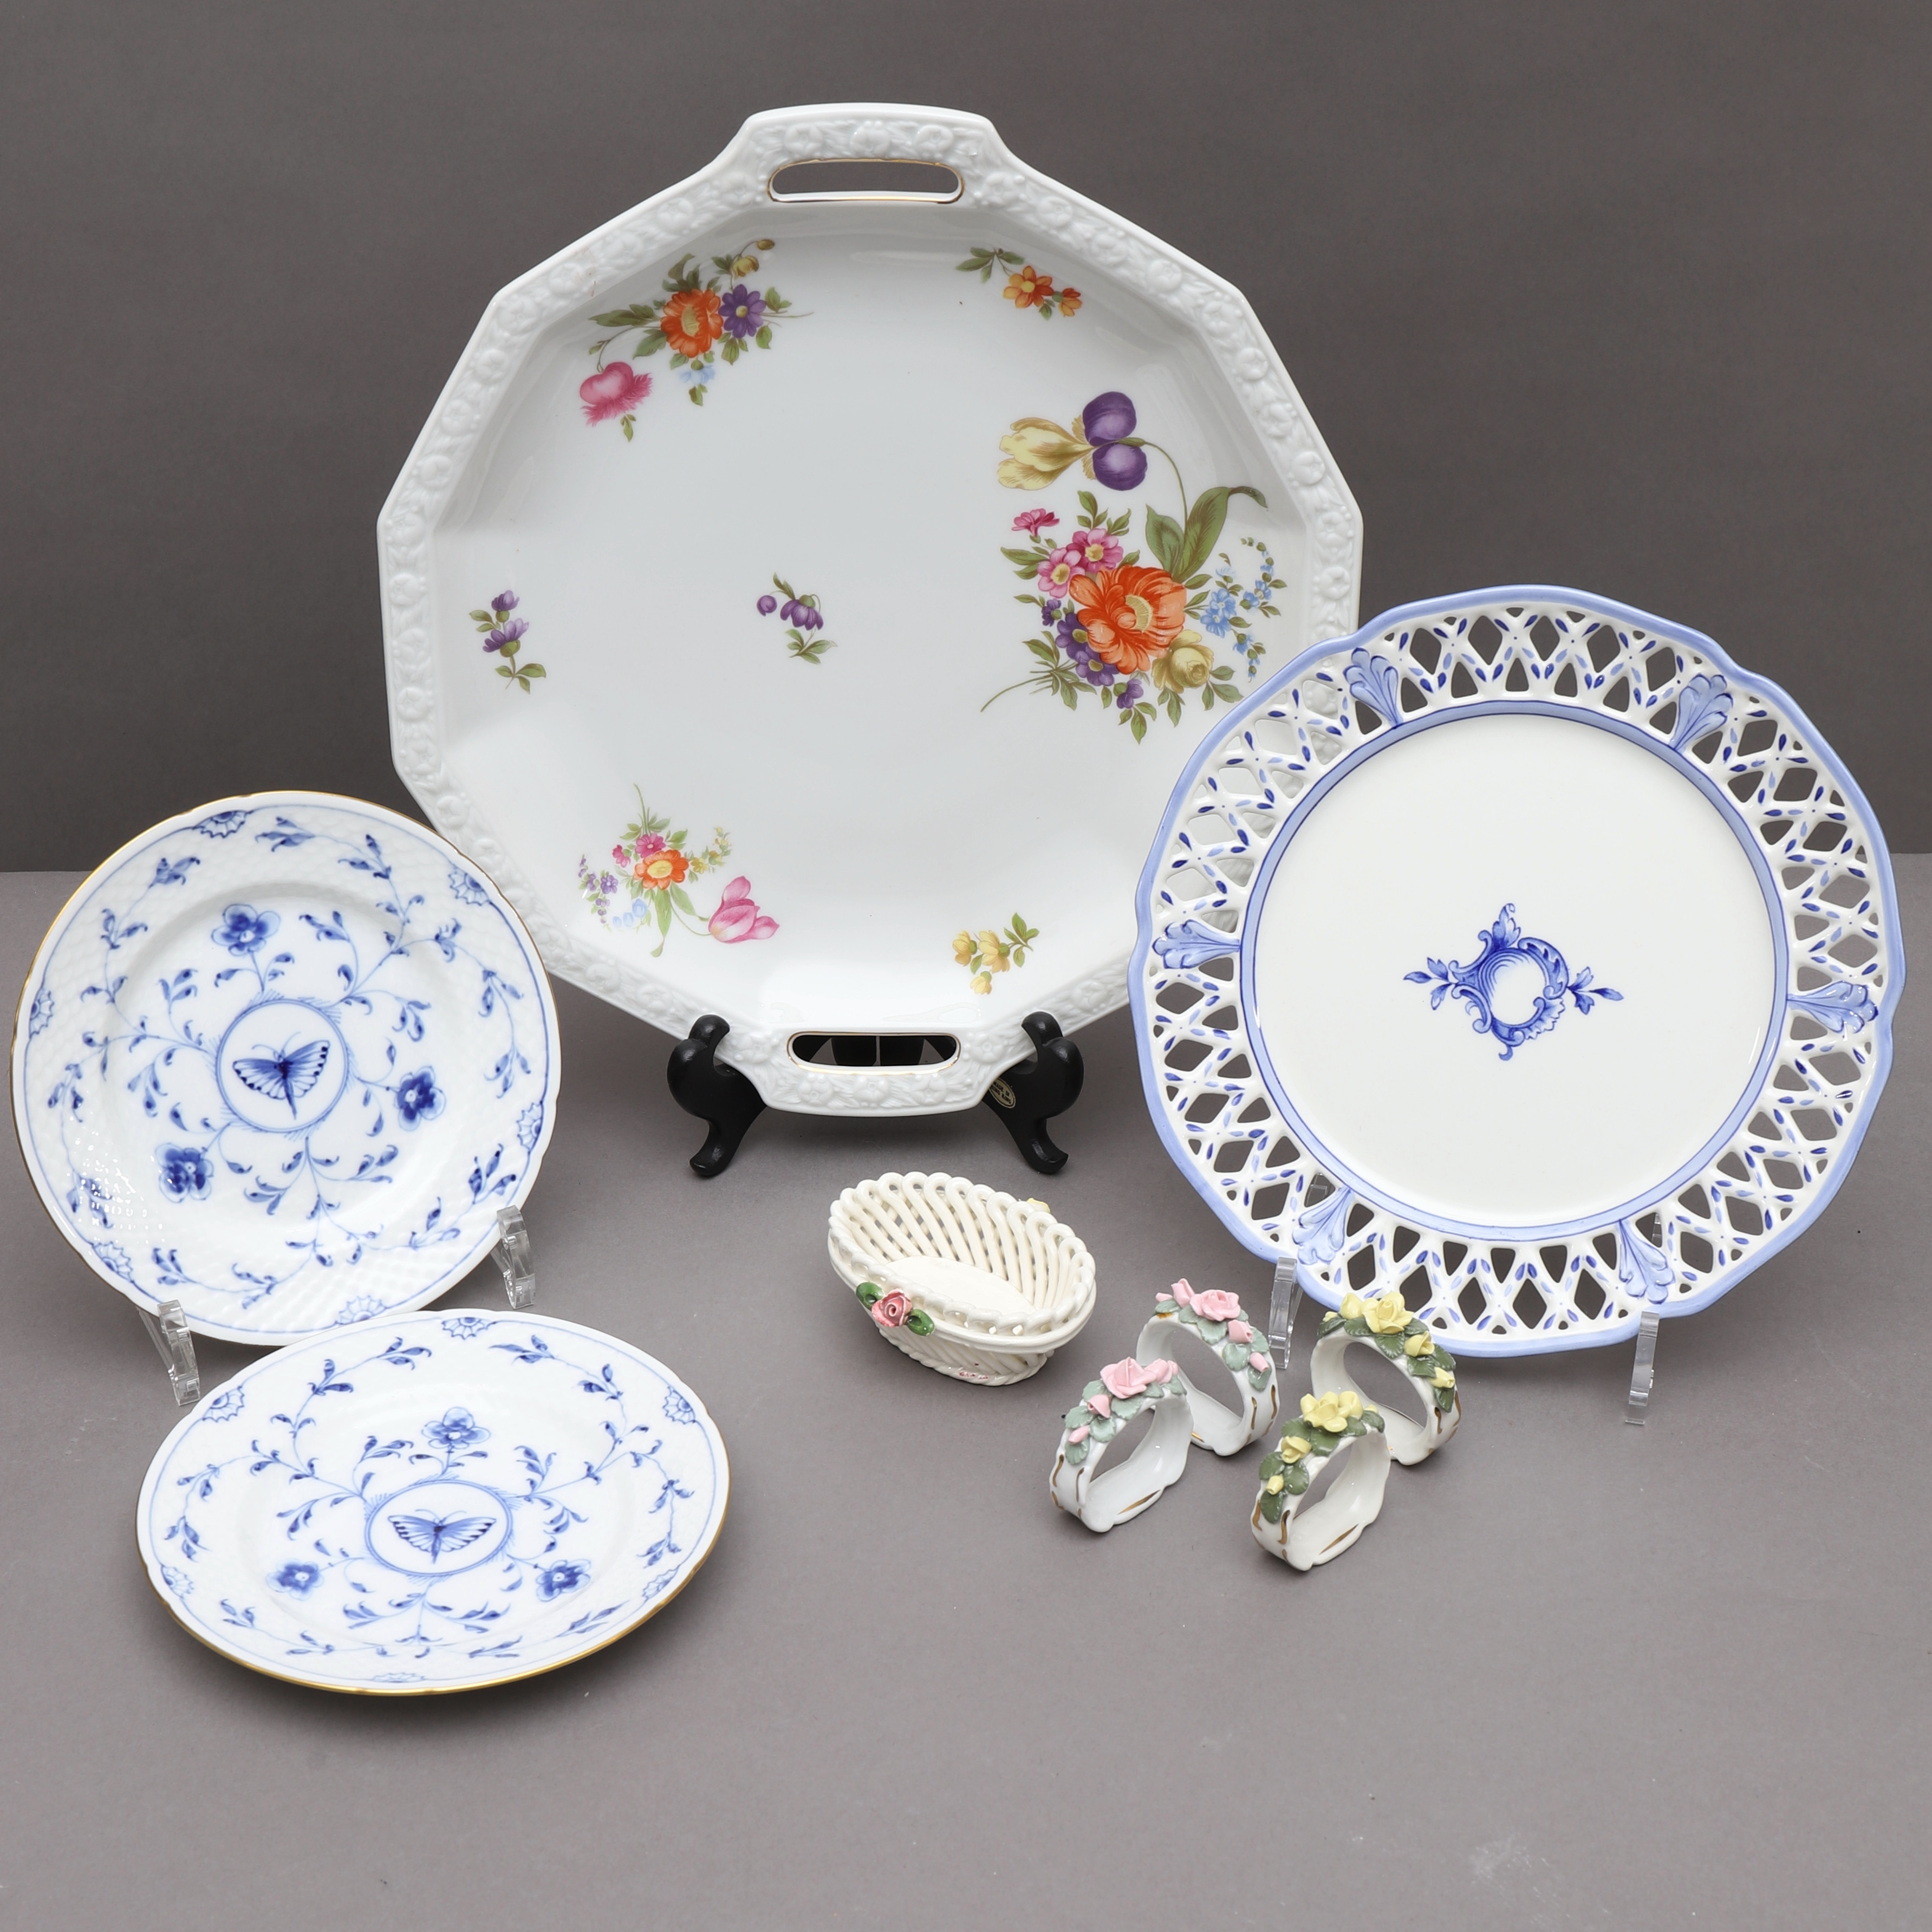 Porcelain Items 9 Parts I A Rorstrand Bing Grondahl Rosenthal Ceramics Porcelain European Auctionet